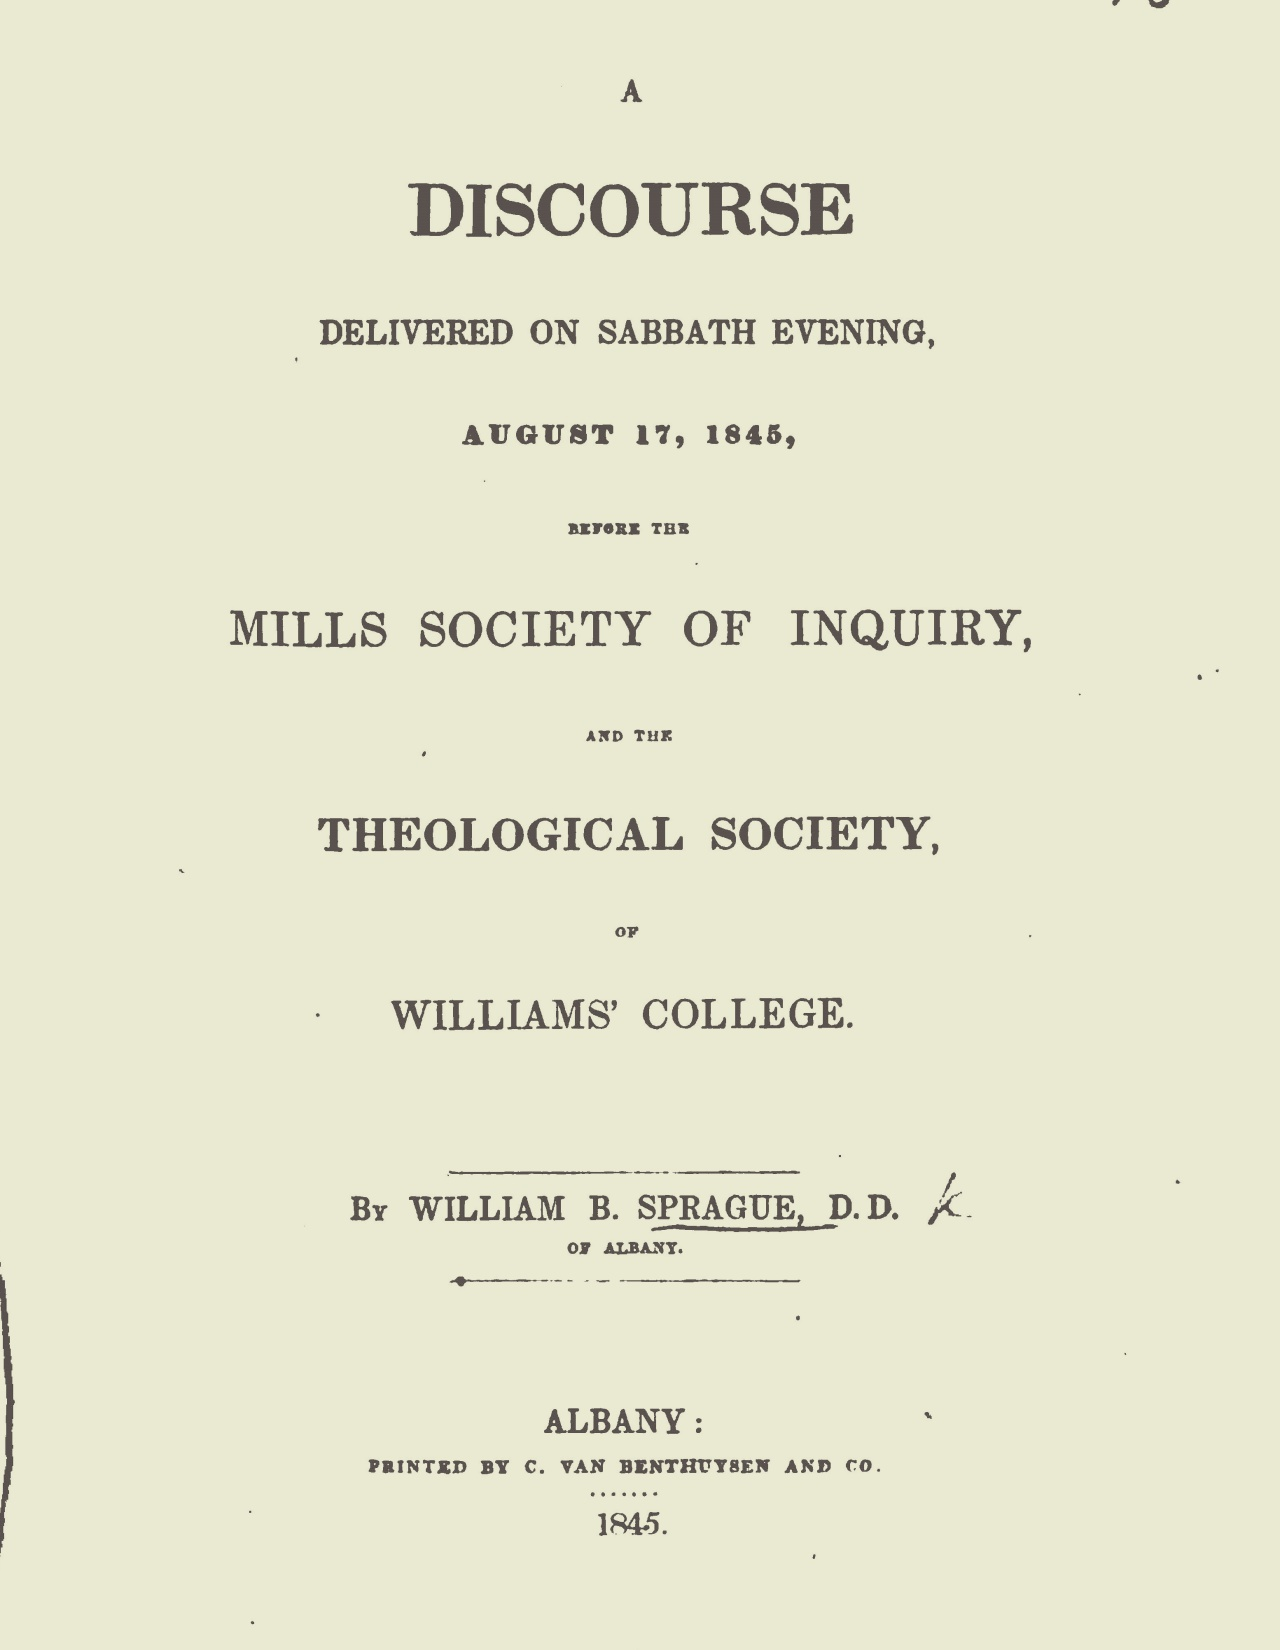 Sprague, William Buell, A Discourse Delivered Before the Mills Society of Inquiry Title Page.jpg